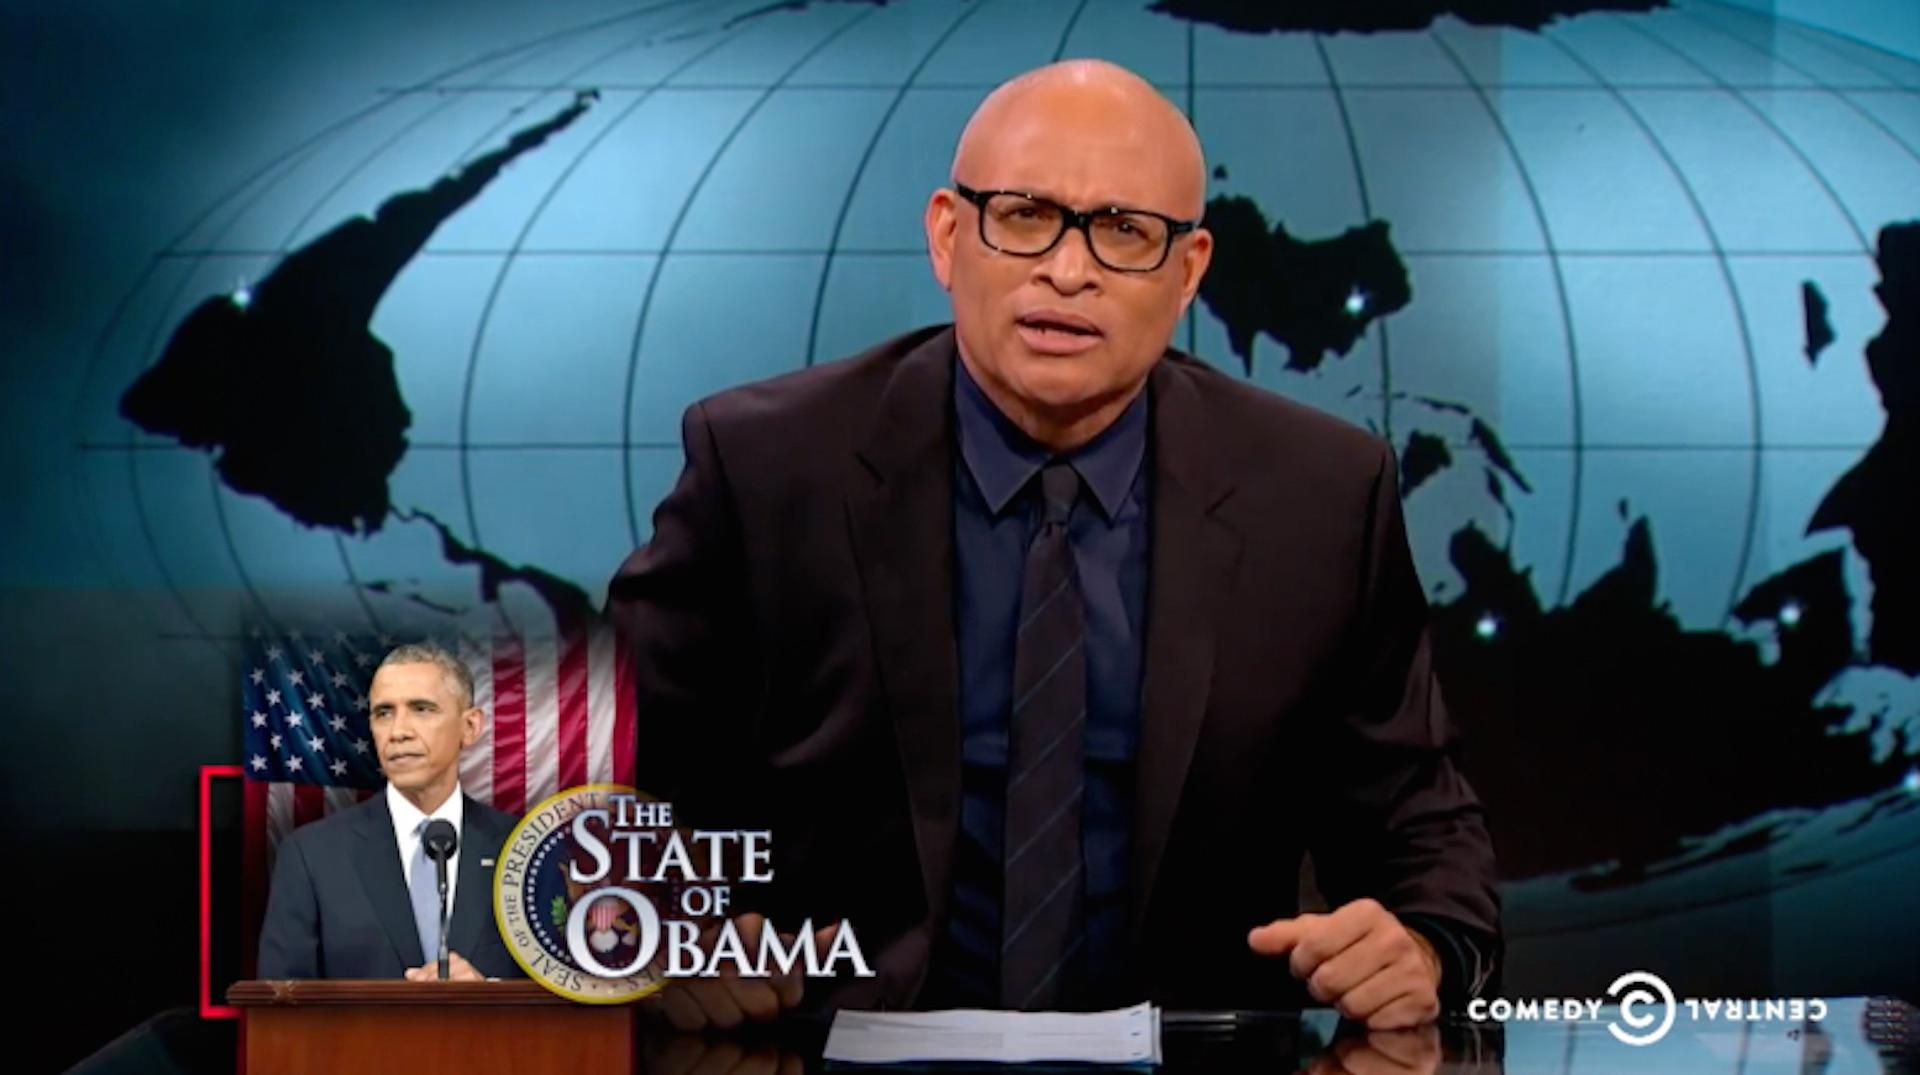 'I only support him because he's black': Larry Wilmore's Obama jokes